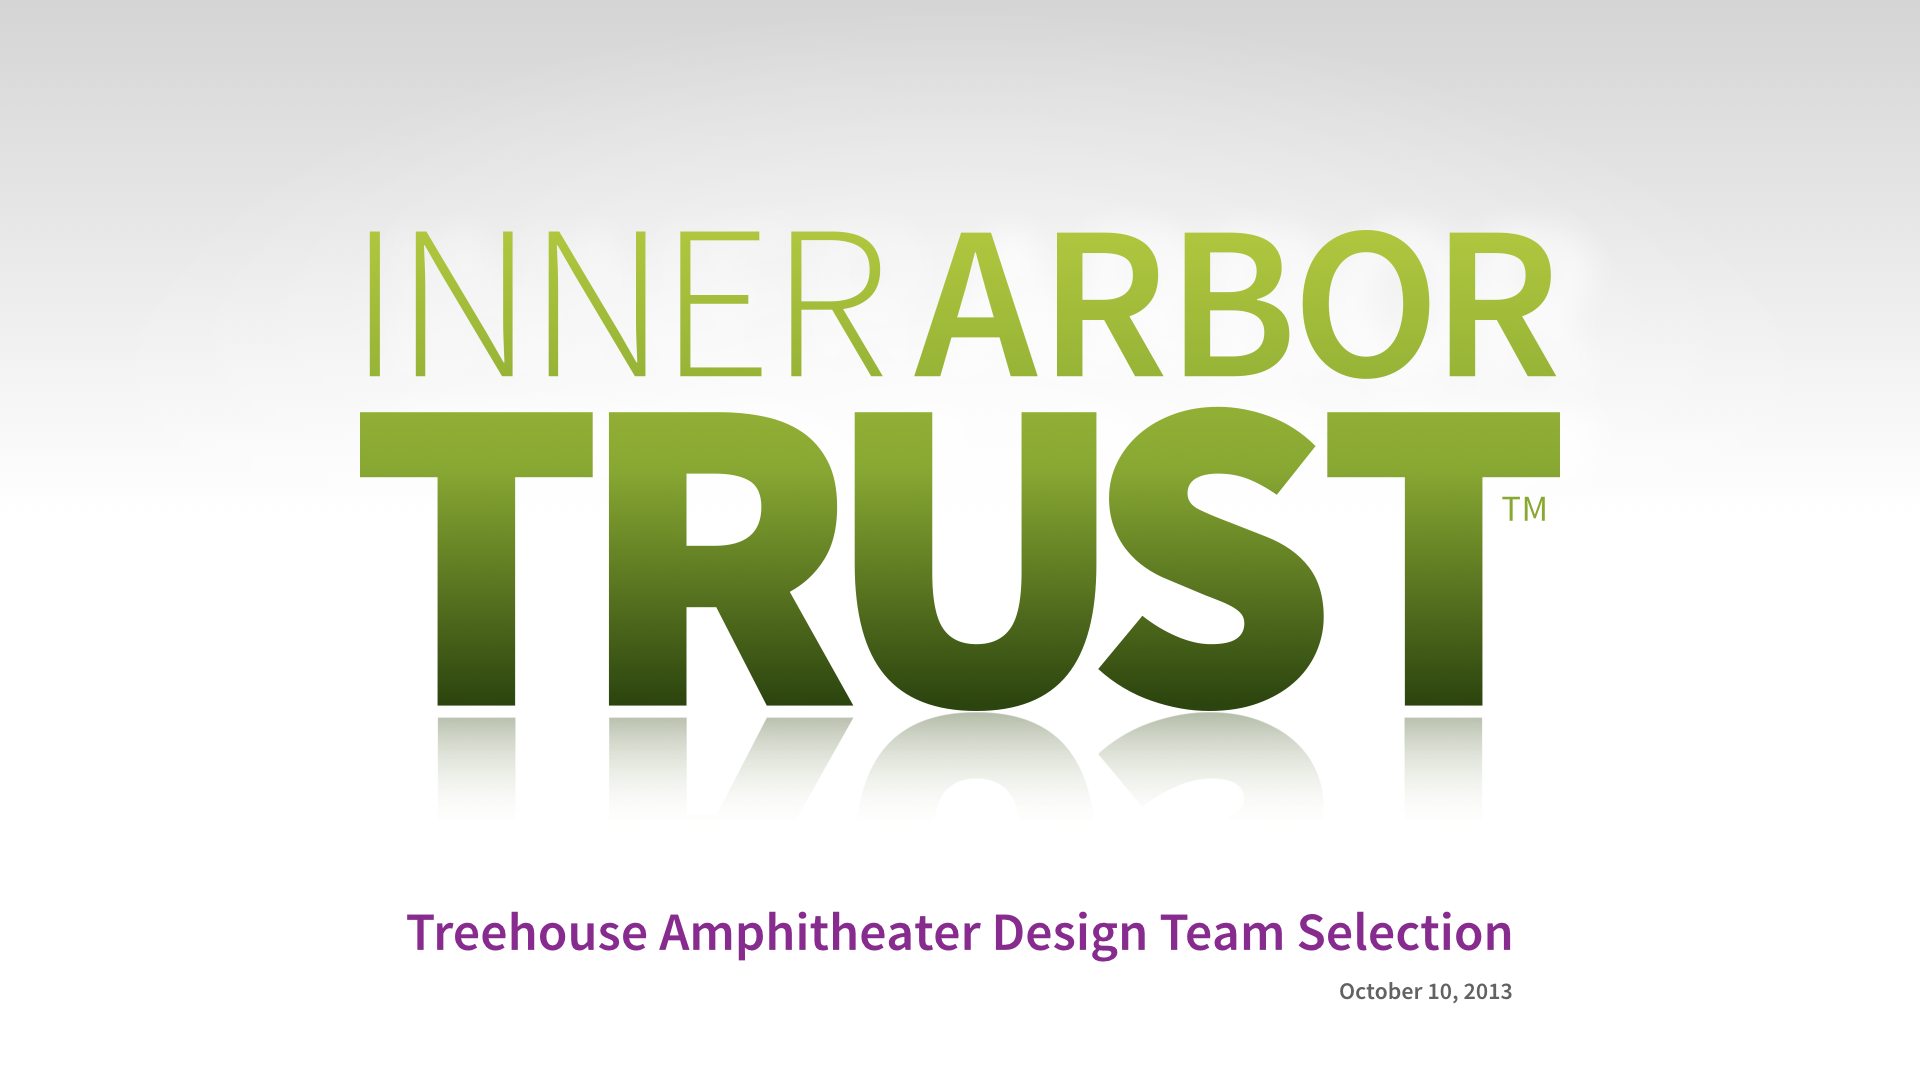 Treehouse Amphitheater Desing Team Selection copy.001.png